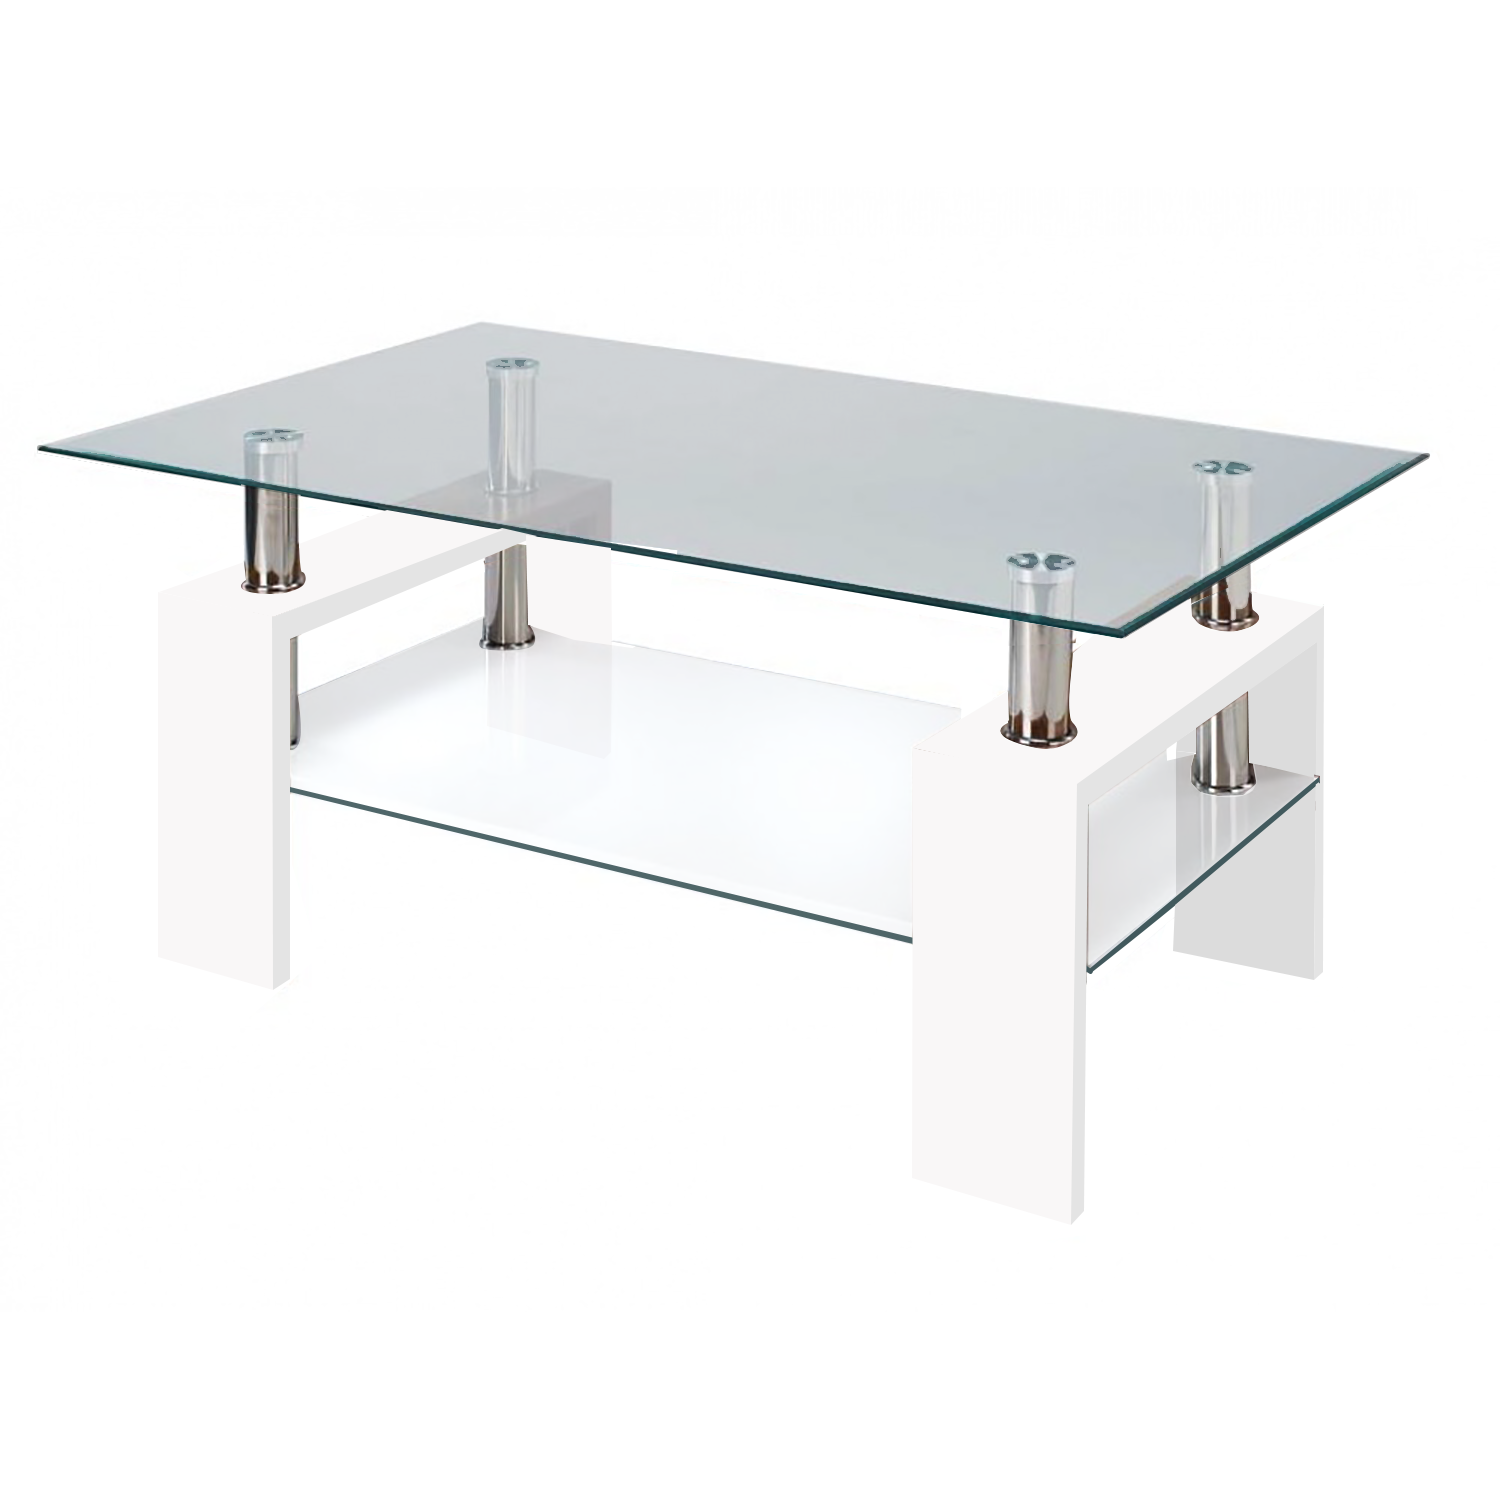 Modern Glass White Coffee Table with Shelf Contemporary